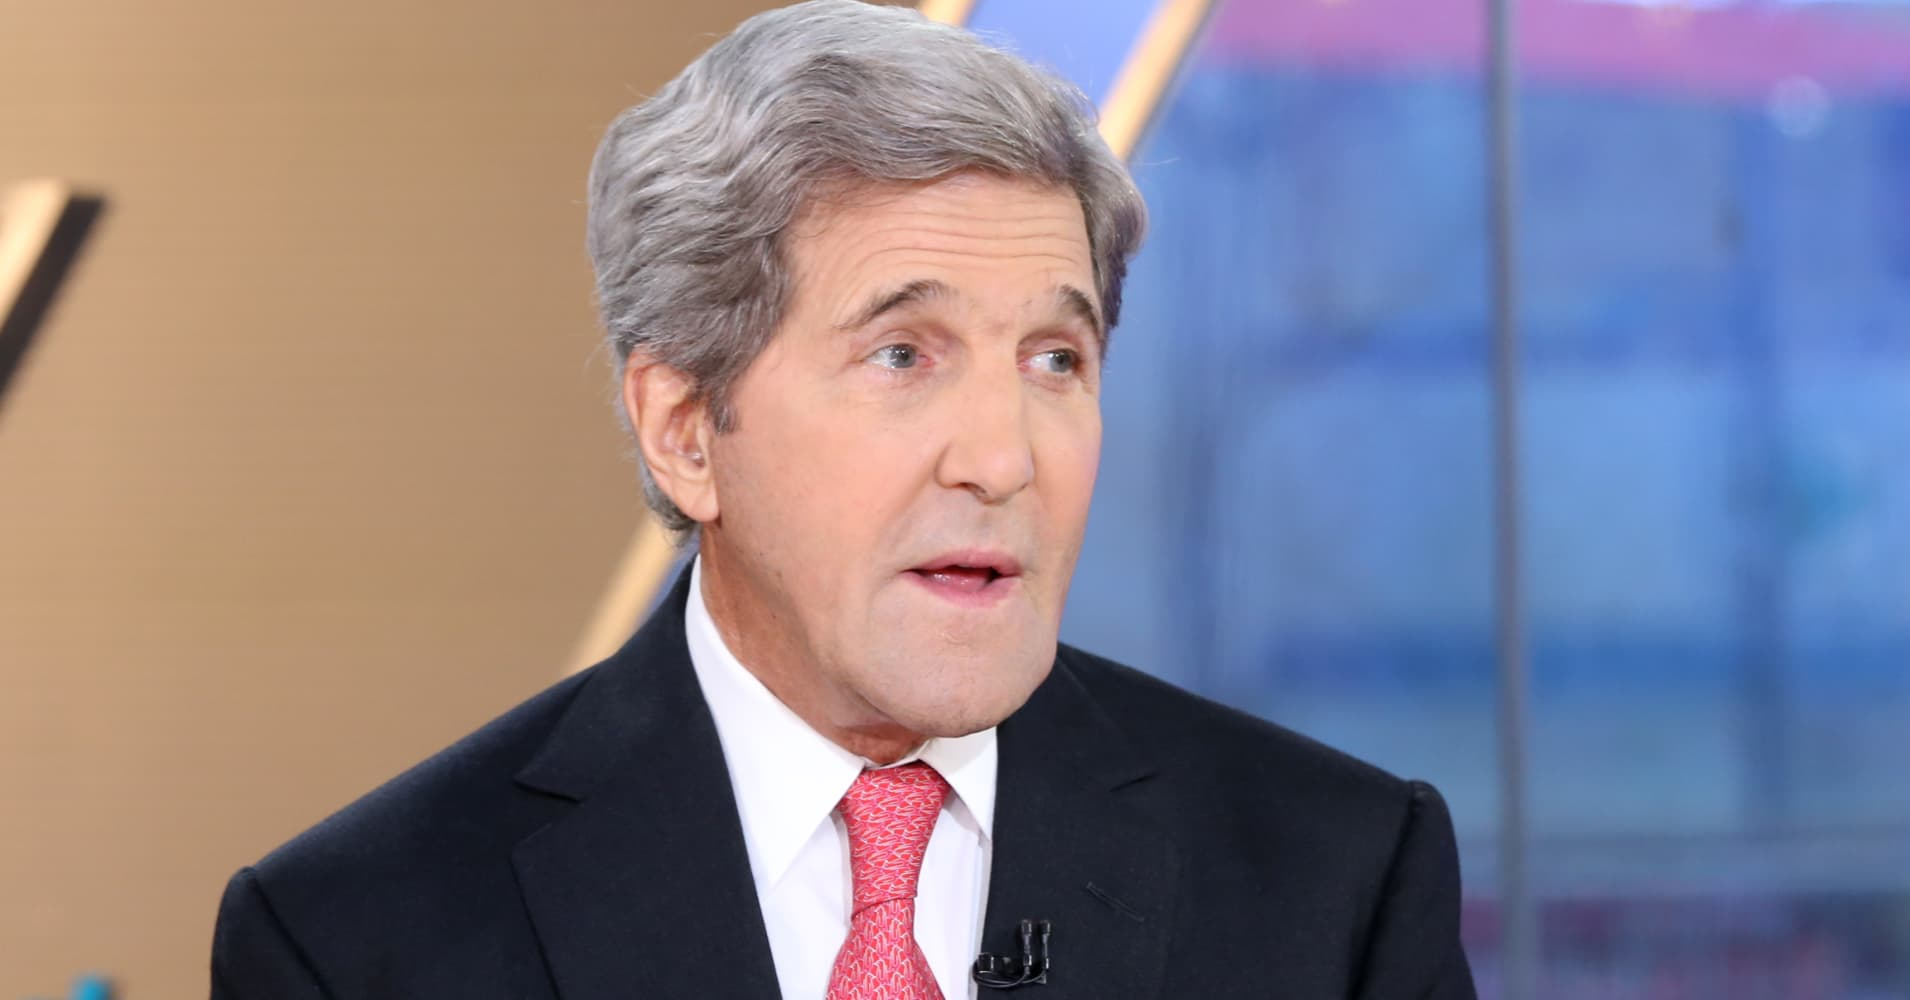 John Kerry slams Trump on Paris climate accord exit: 'It's going to cost lives'